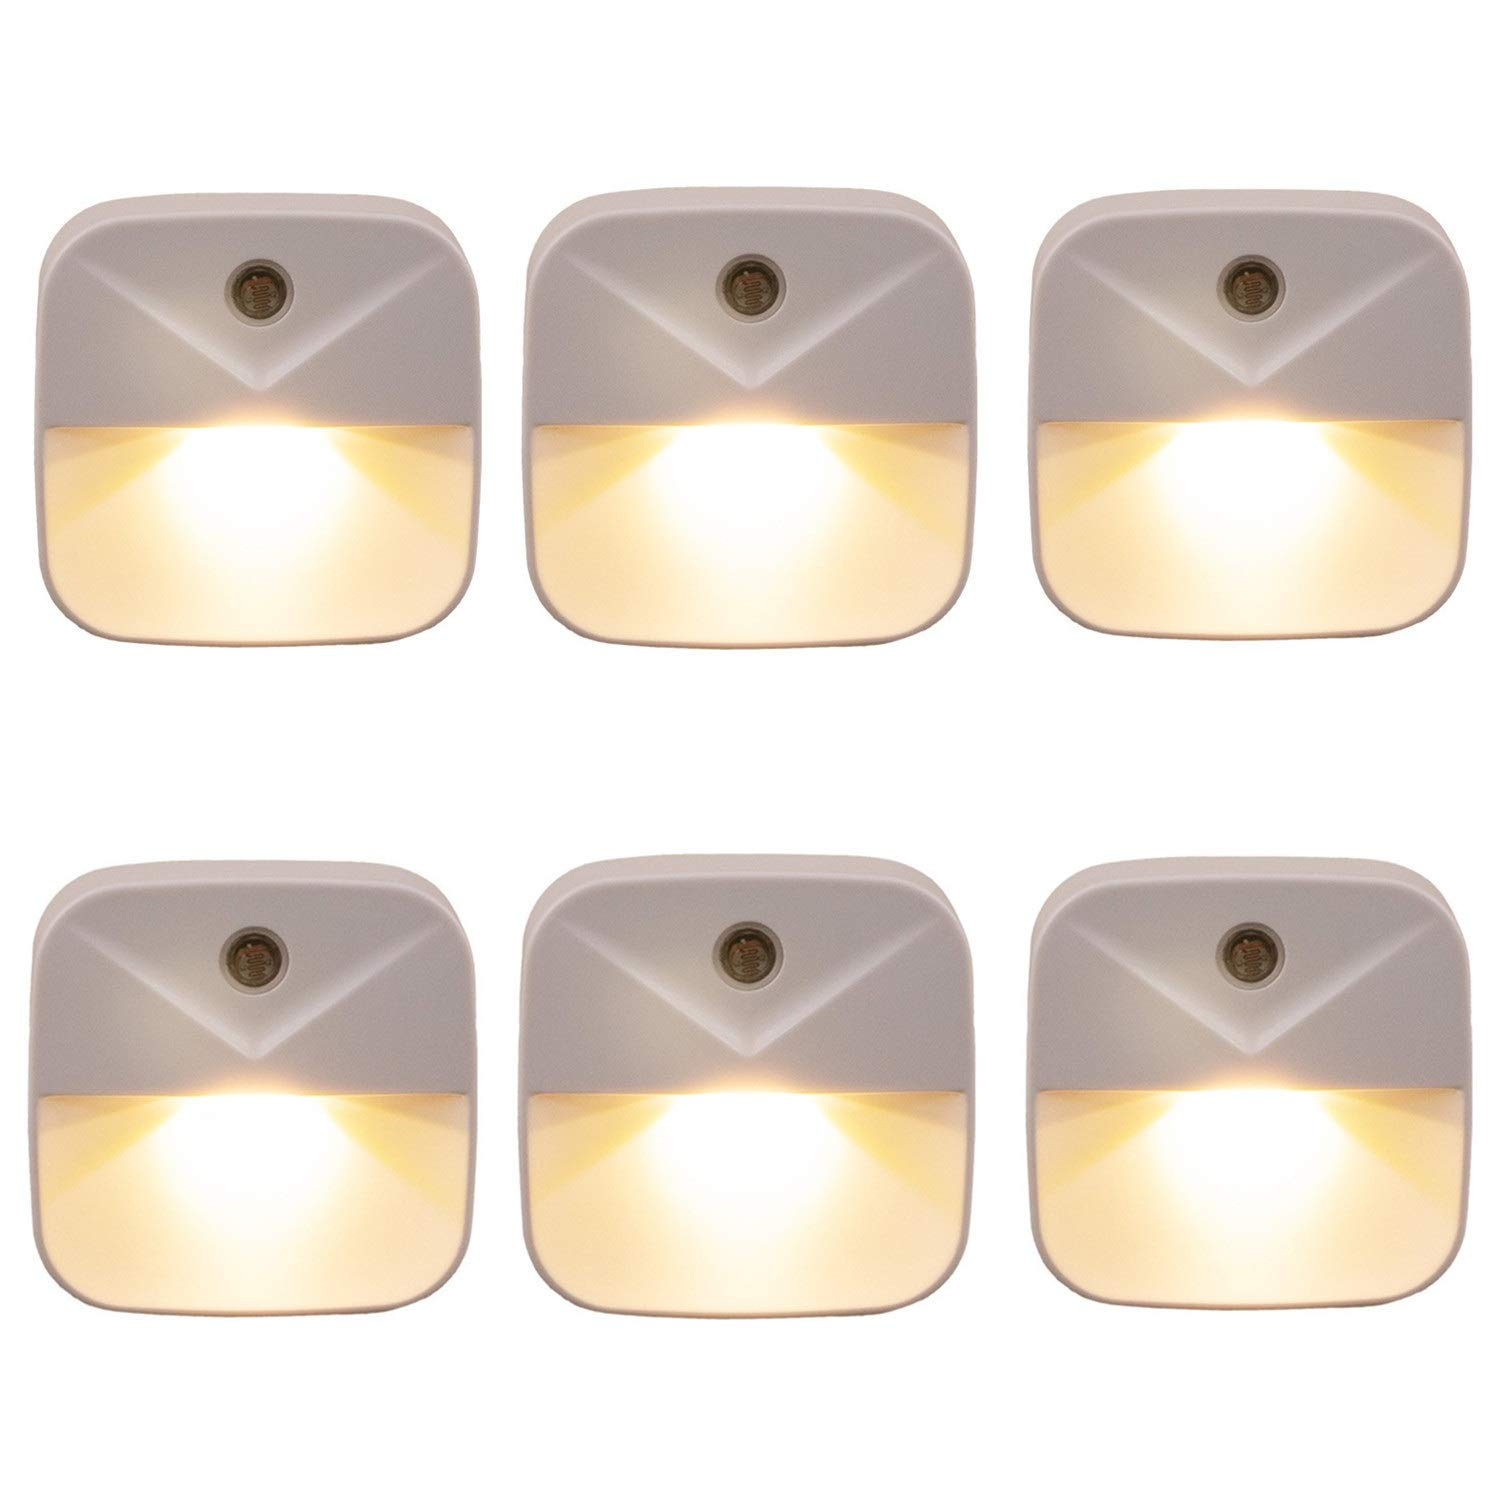 6 Pack Plug in LED Night Light, 0.4W Low Energy Lamp